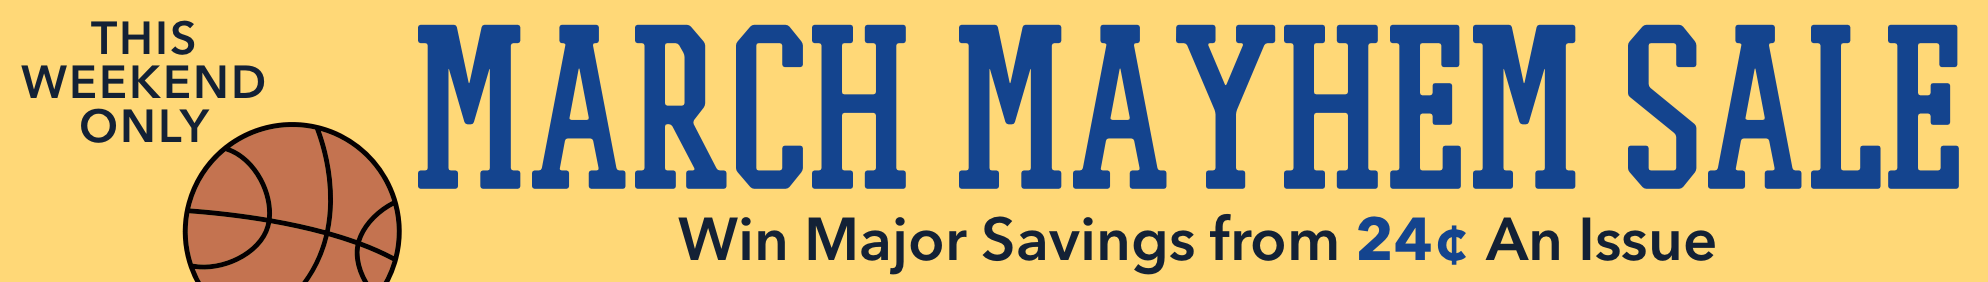 The March Madness Sale 2019